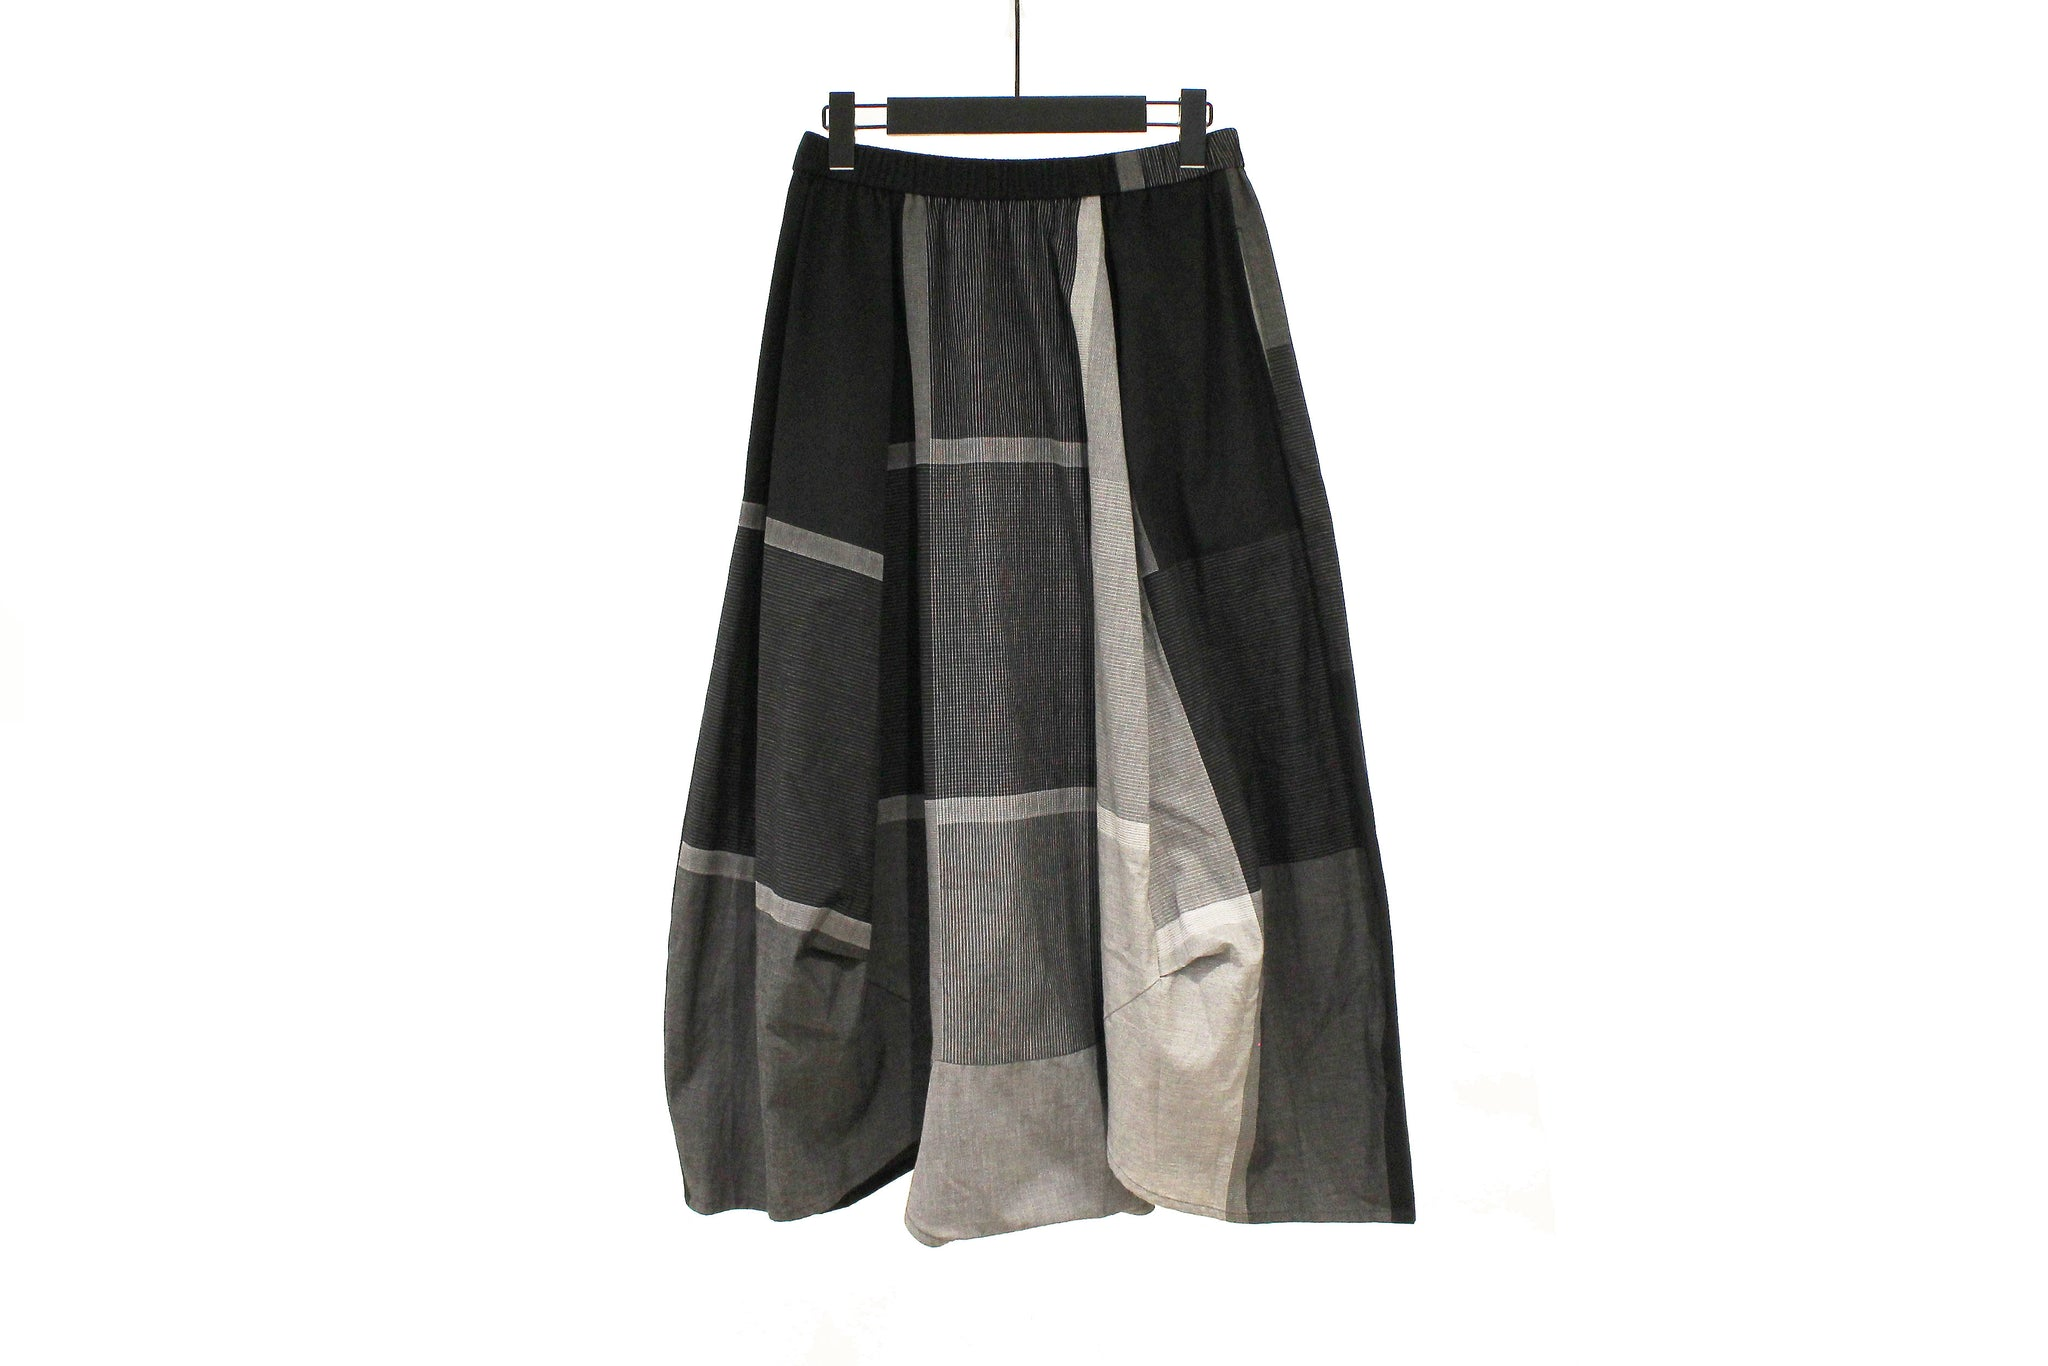 JI-U Black & Brown Striped Trousers